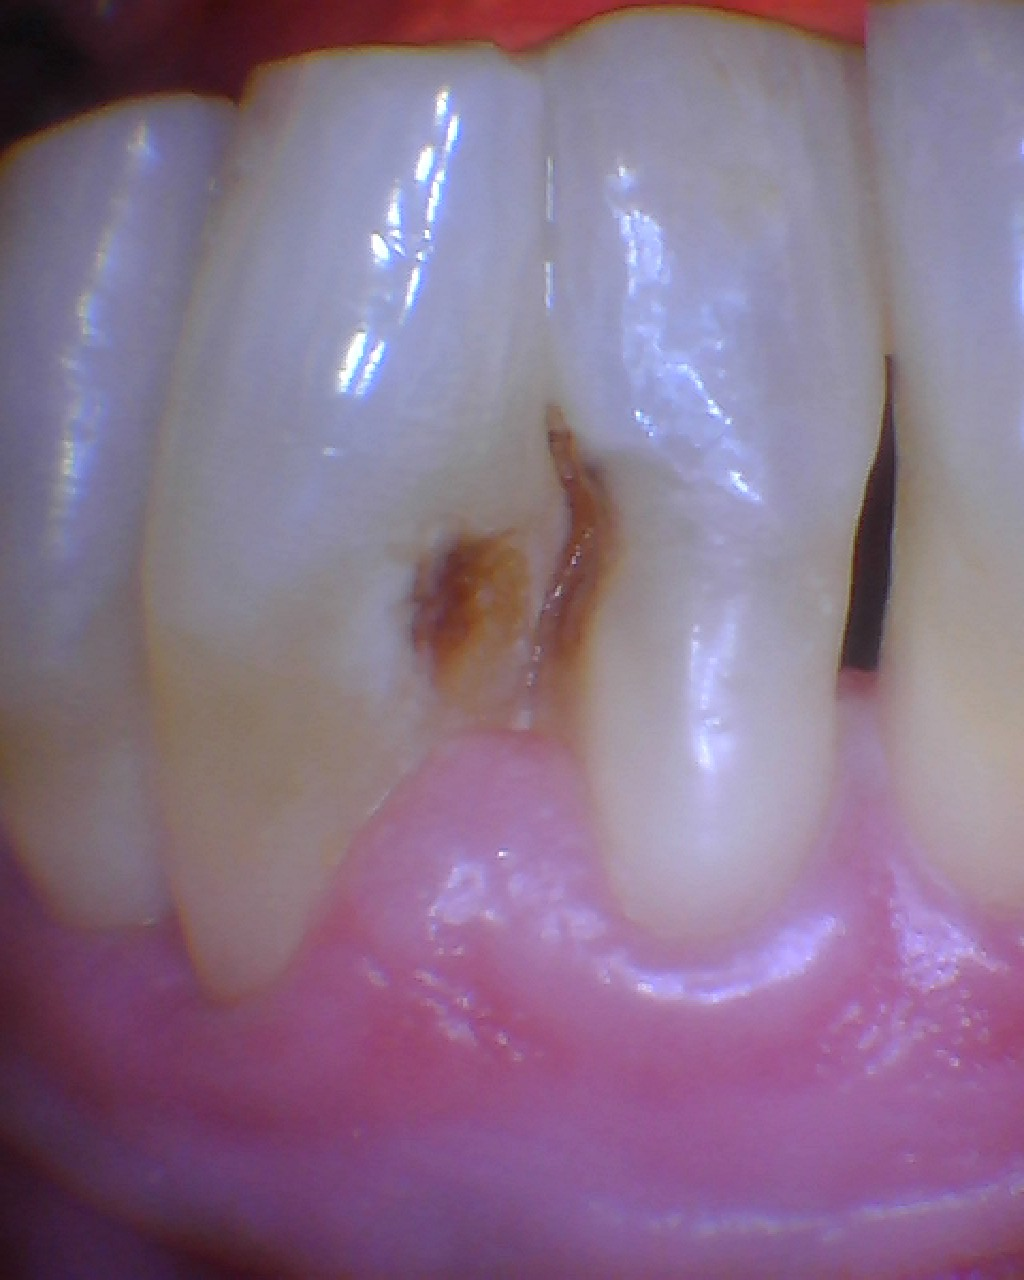 Teeth with root caries or cavities